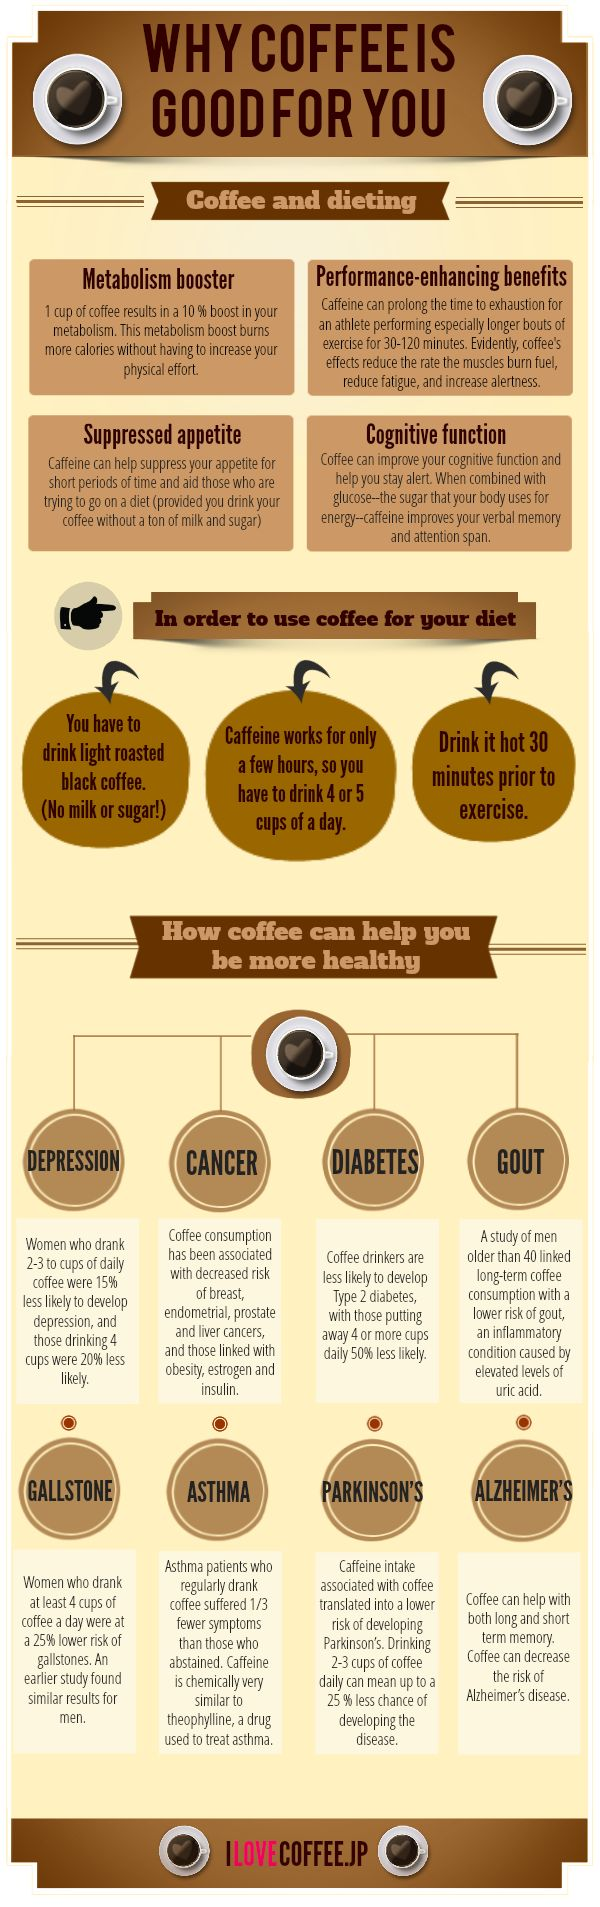 Why coffee is good for you - I Love Coffee